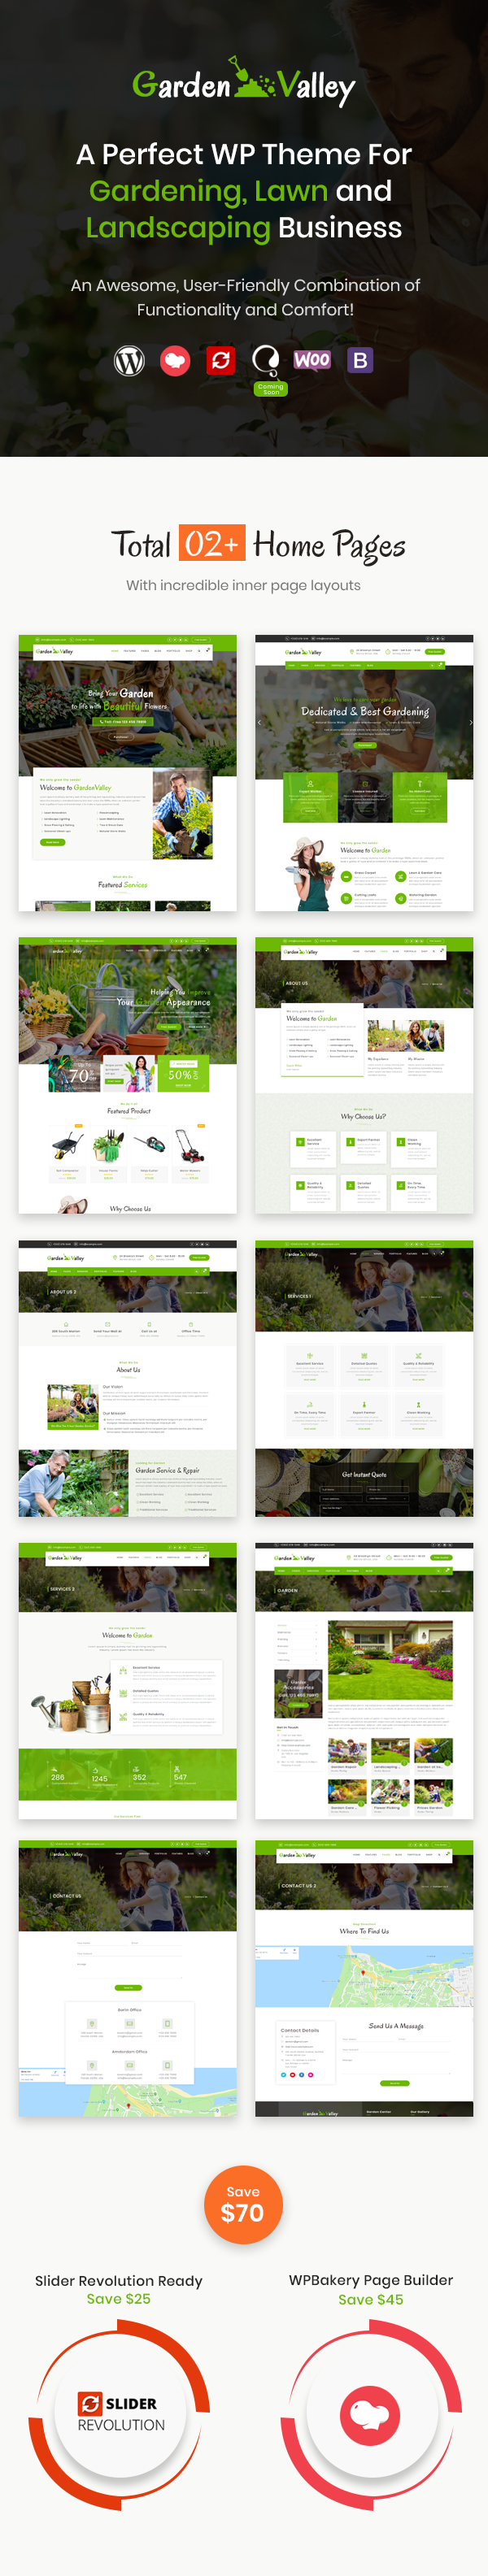 GardenValley WordPress Theme